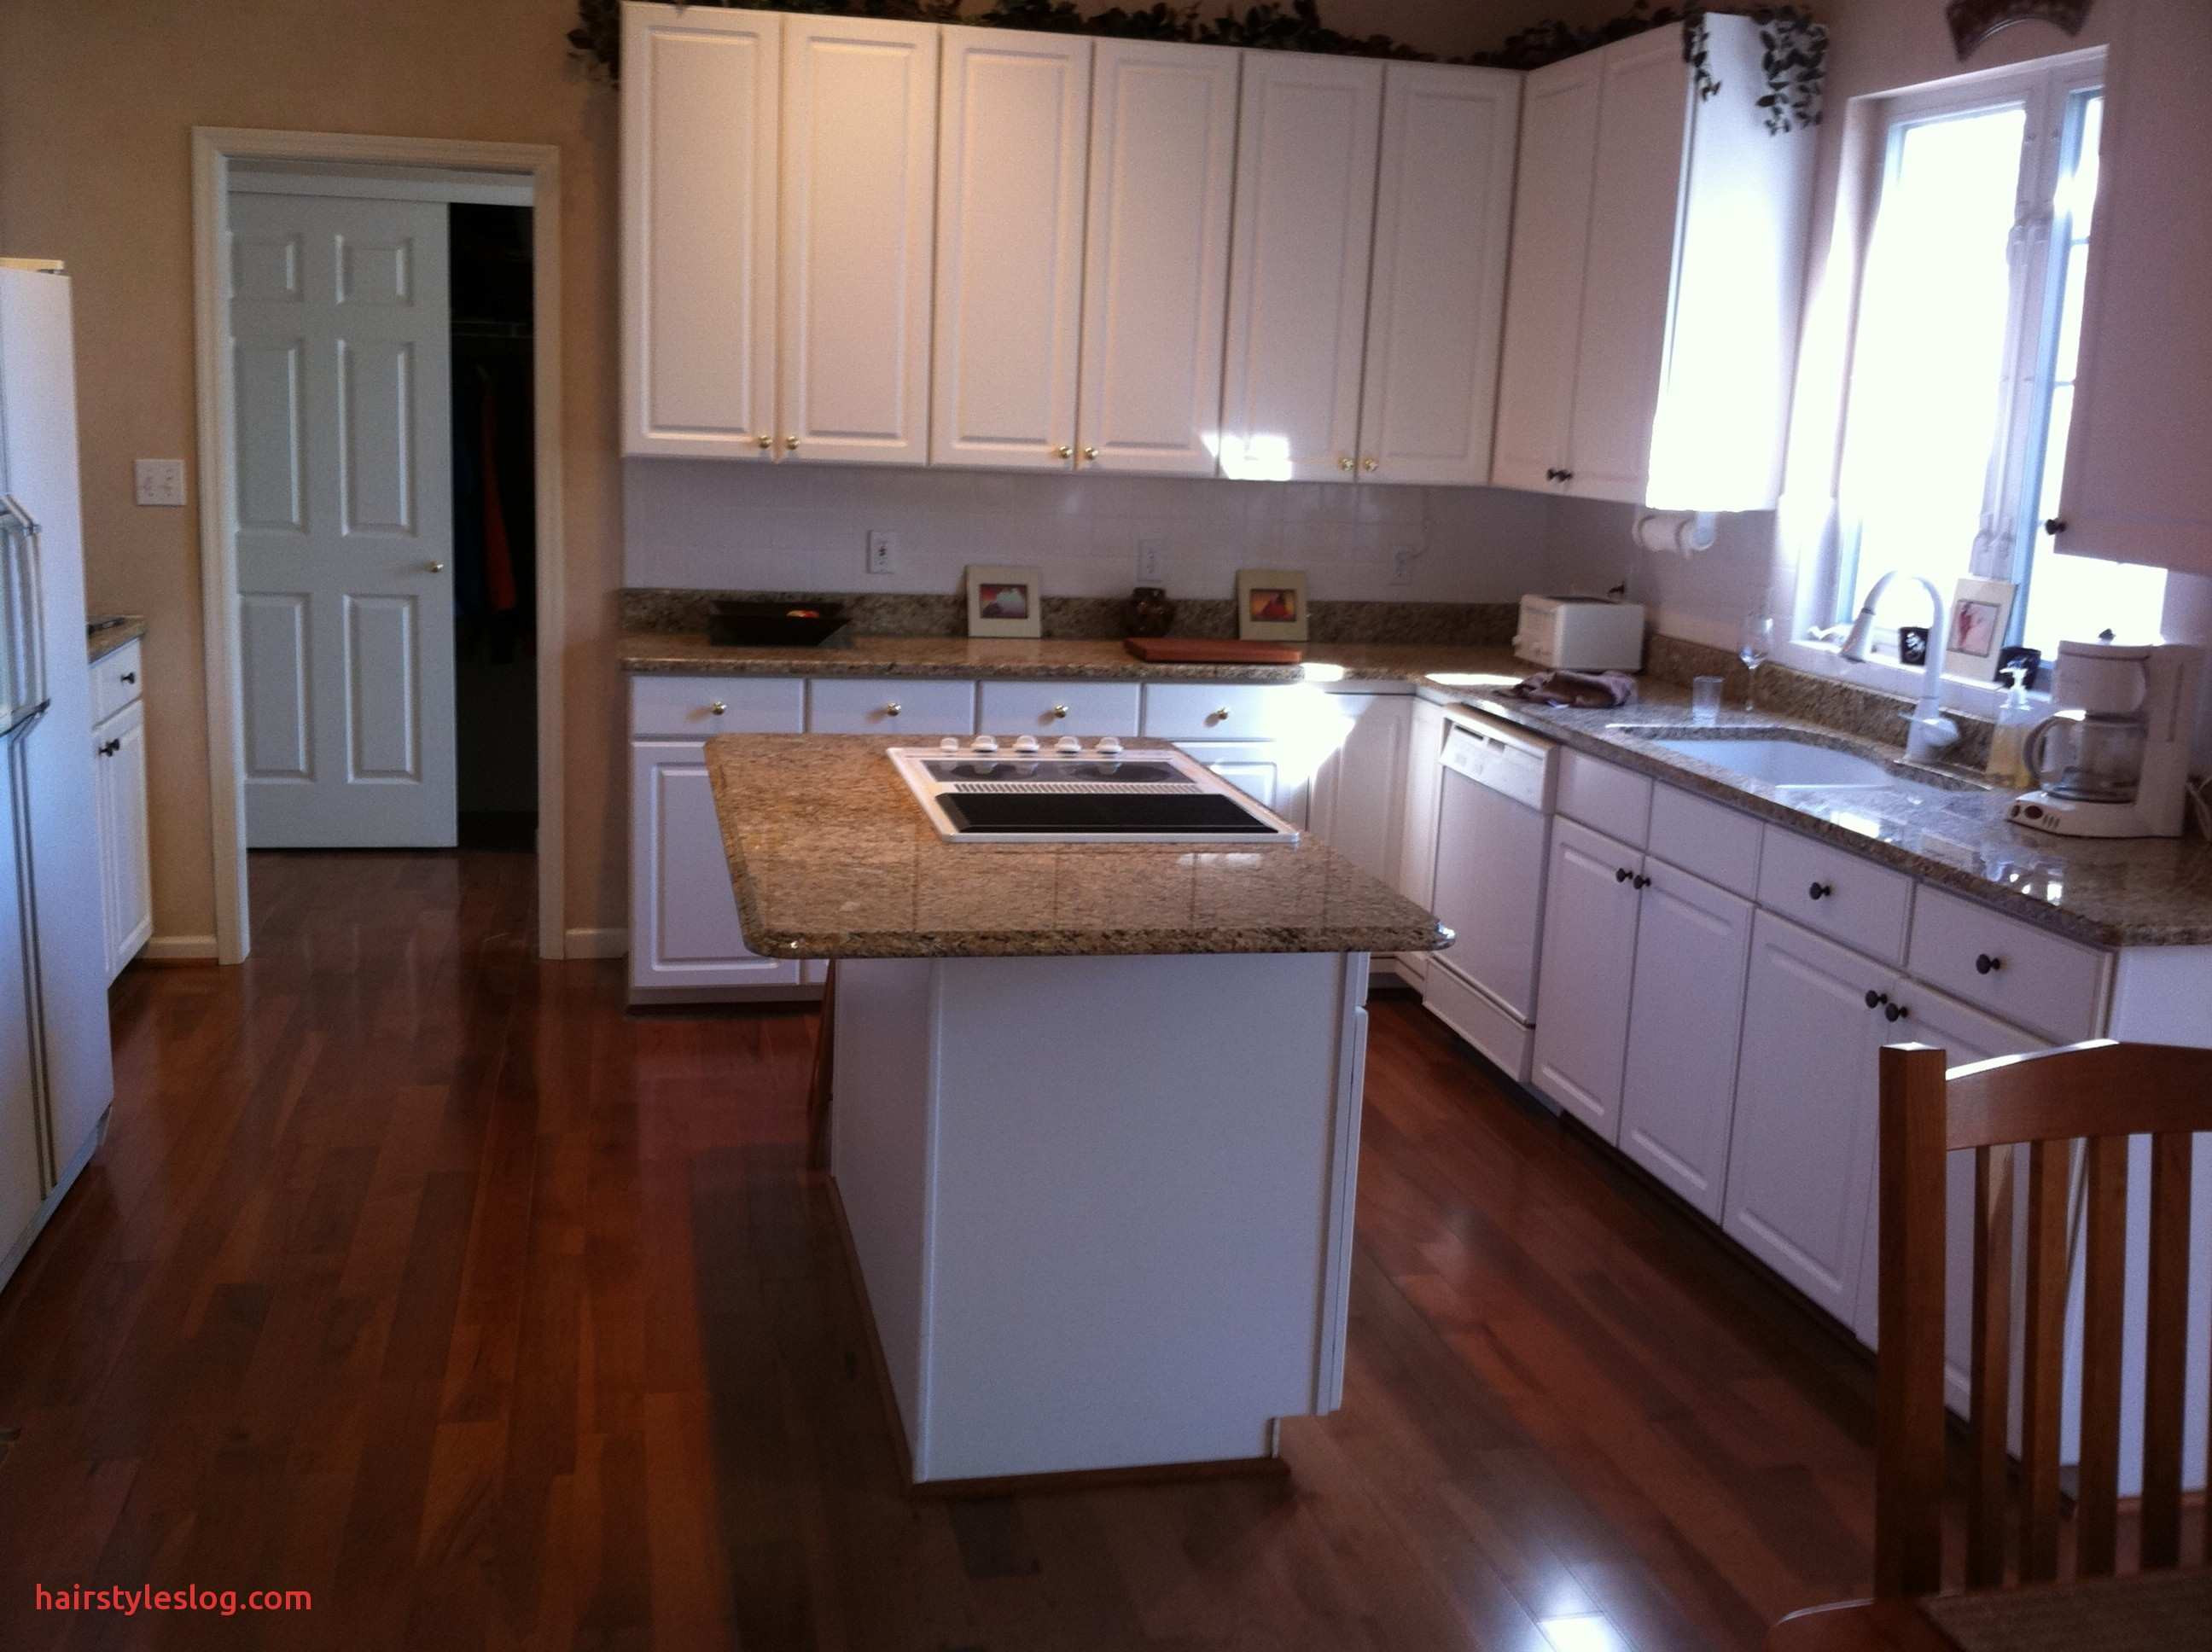 dark hardwood floors with oak cabinets of wonderful kitchen cabinets with dark hardwood floors regarding within adorable kitchen cabinets with dark hardwood floors for dresser great images of what color laminate flooring